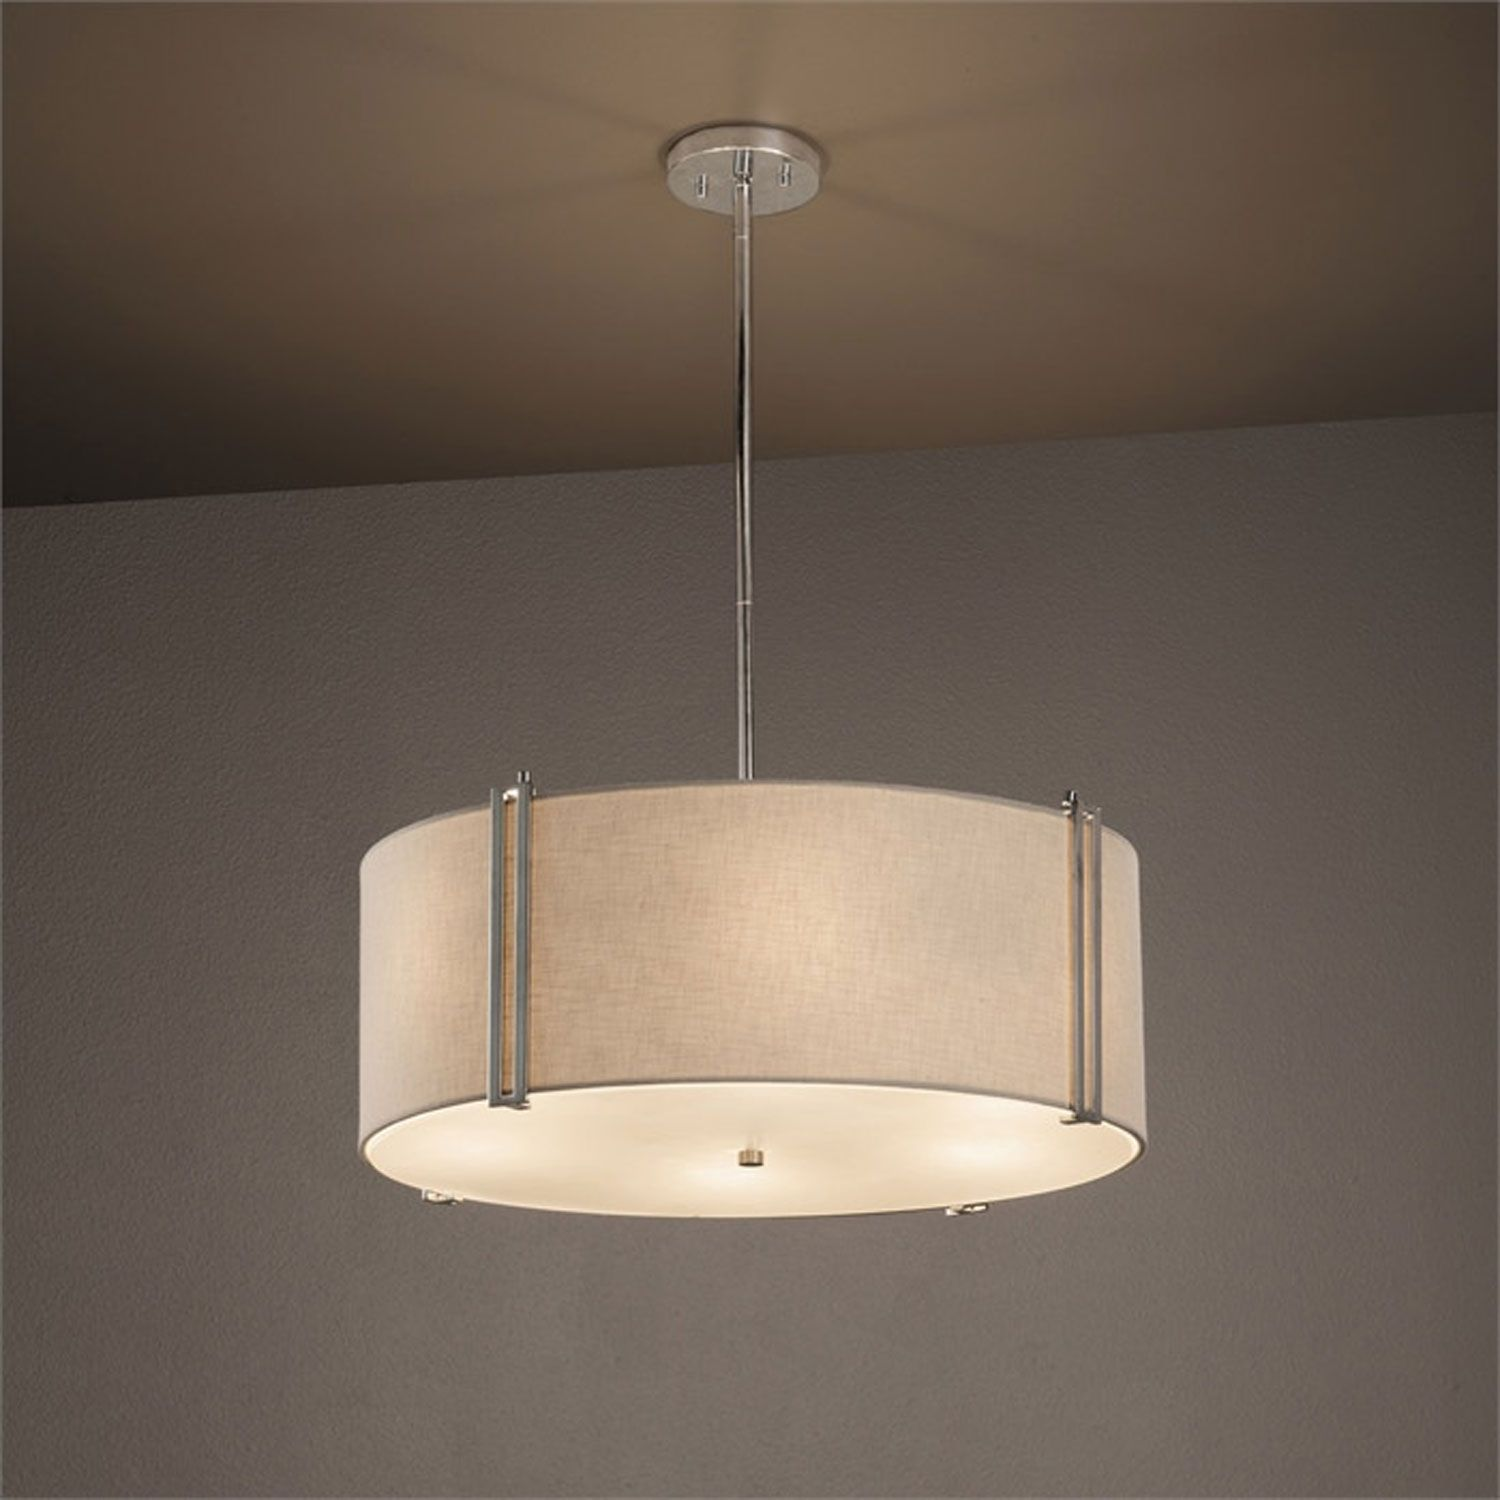 Justice Design Group Textile Reveal Brushed Nickel 24 Inch Six Light Drum Pendant With White Shade Fab 9512 Whte Nckl Bellacor Drum Chandelier Drum Pendant Lighting Drum Pendant